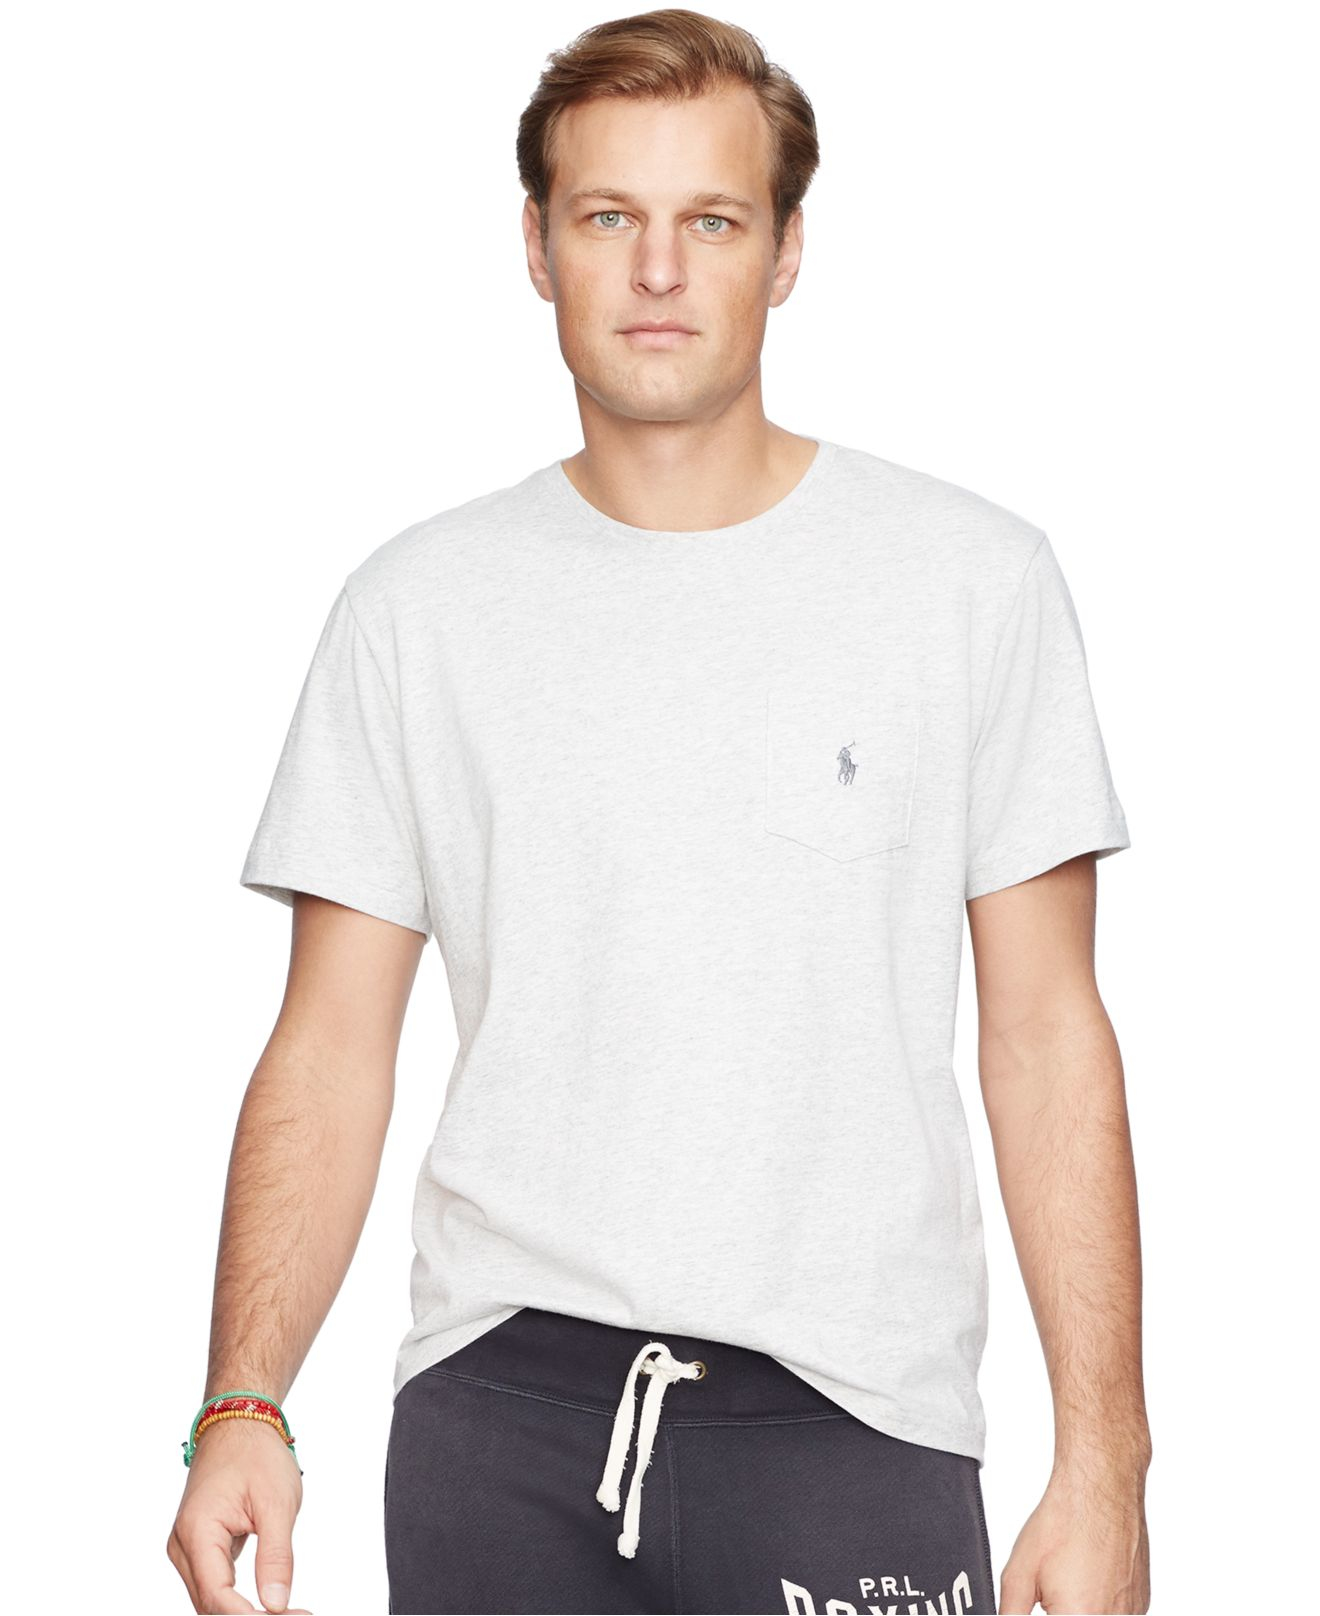 Polo ralph lauren men 39 s big and tall jersey pocket crew for Big and tall polo shirts with pockets